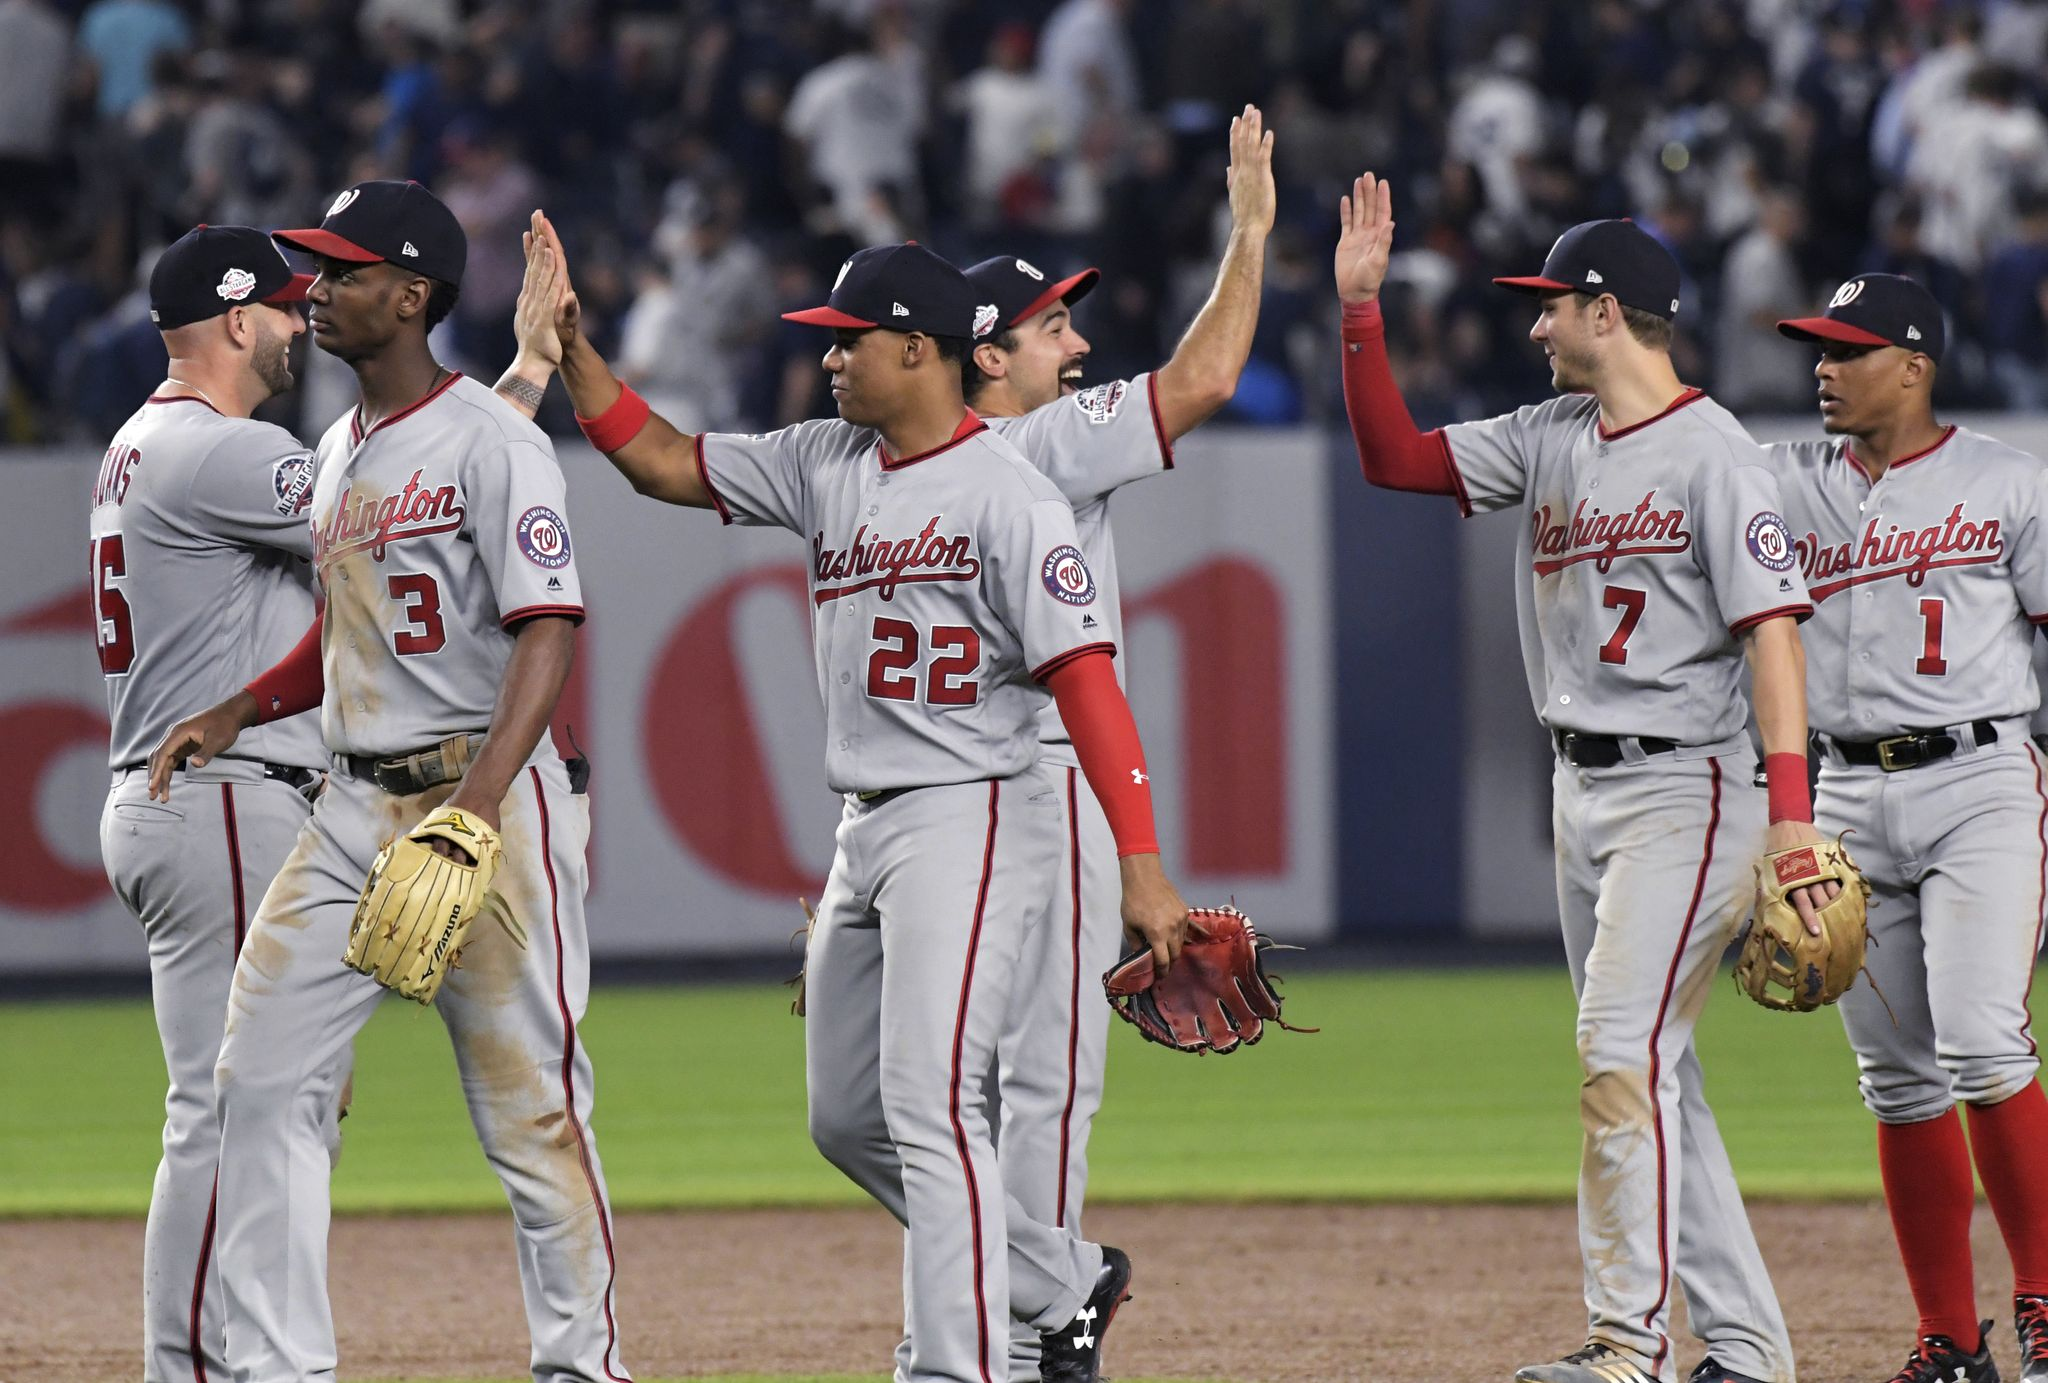 Nationals_yankees_baseball_03082.jpg-38aea_s2048x1383